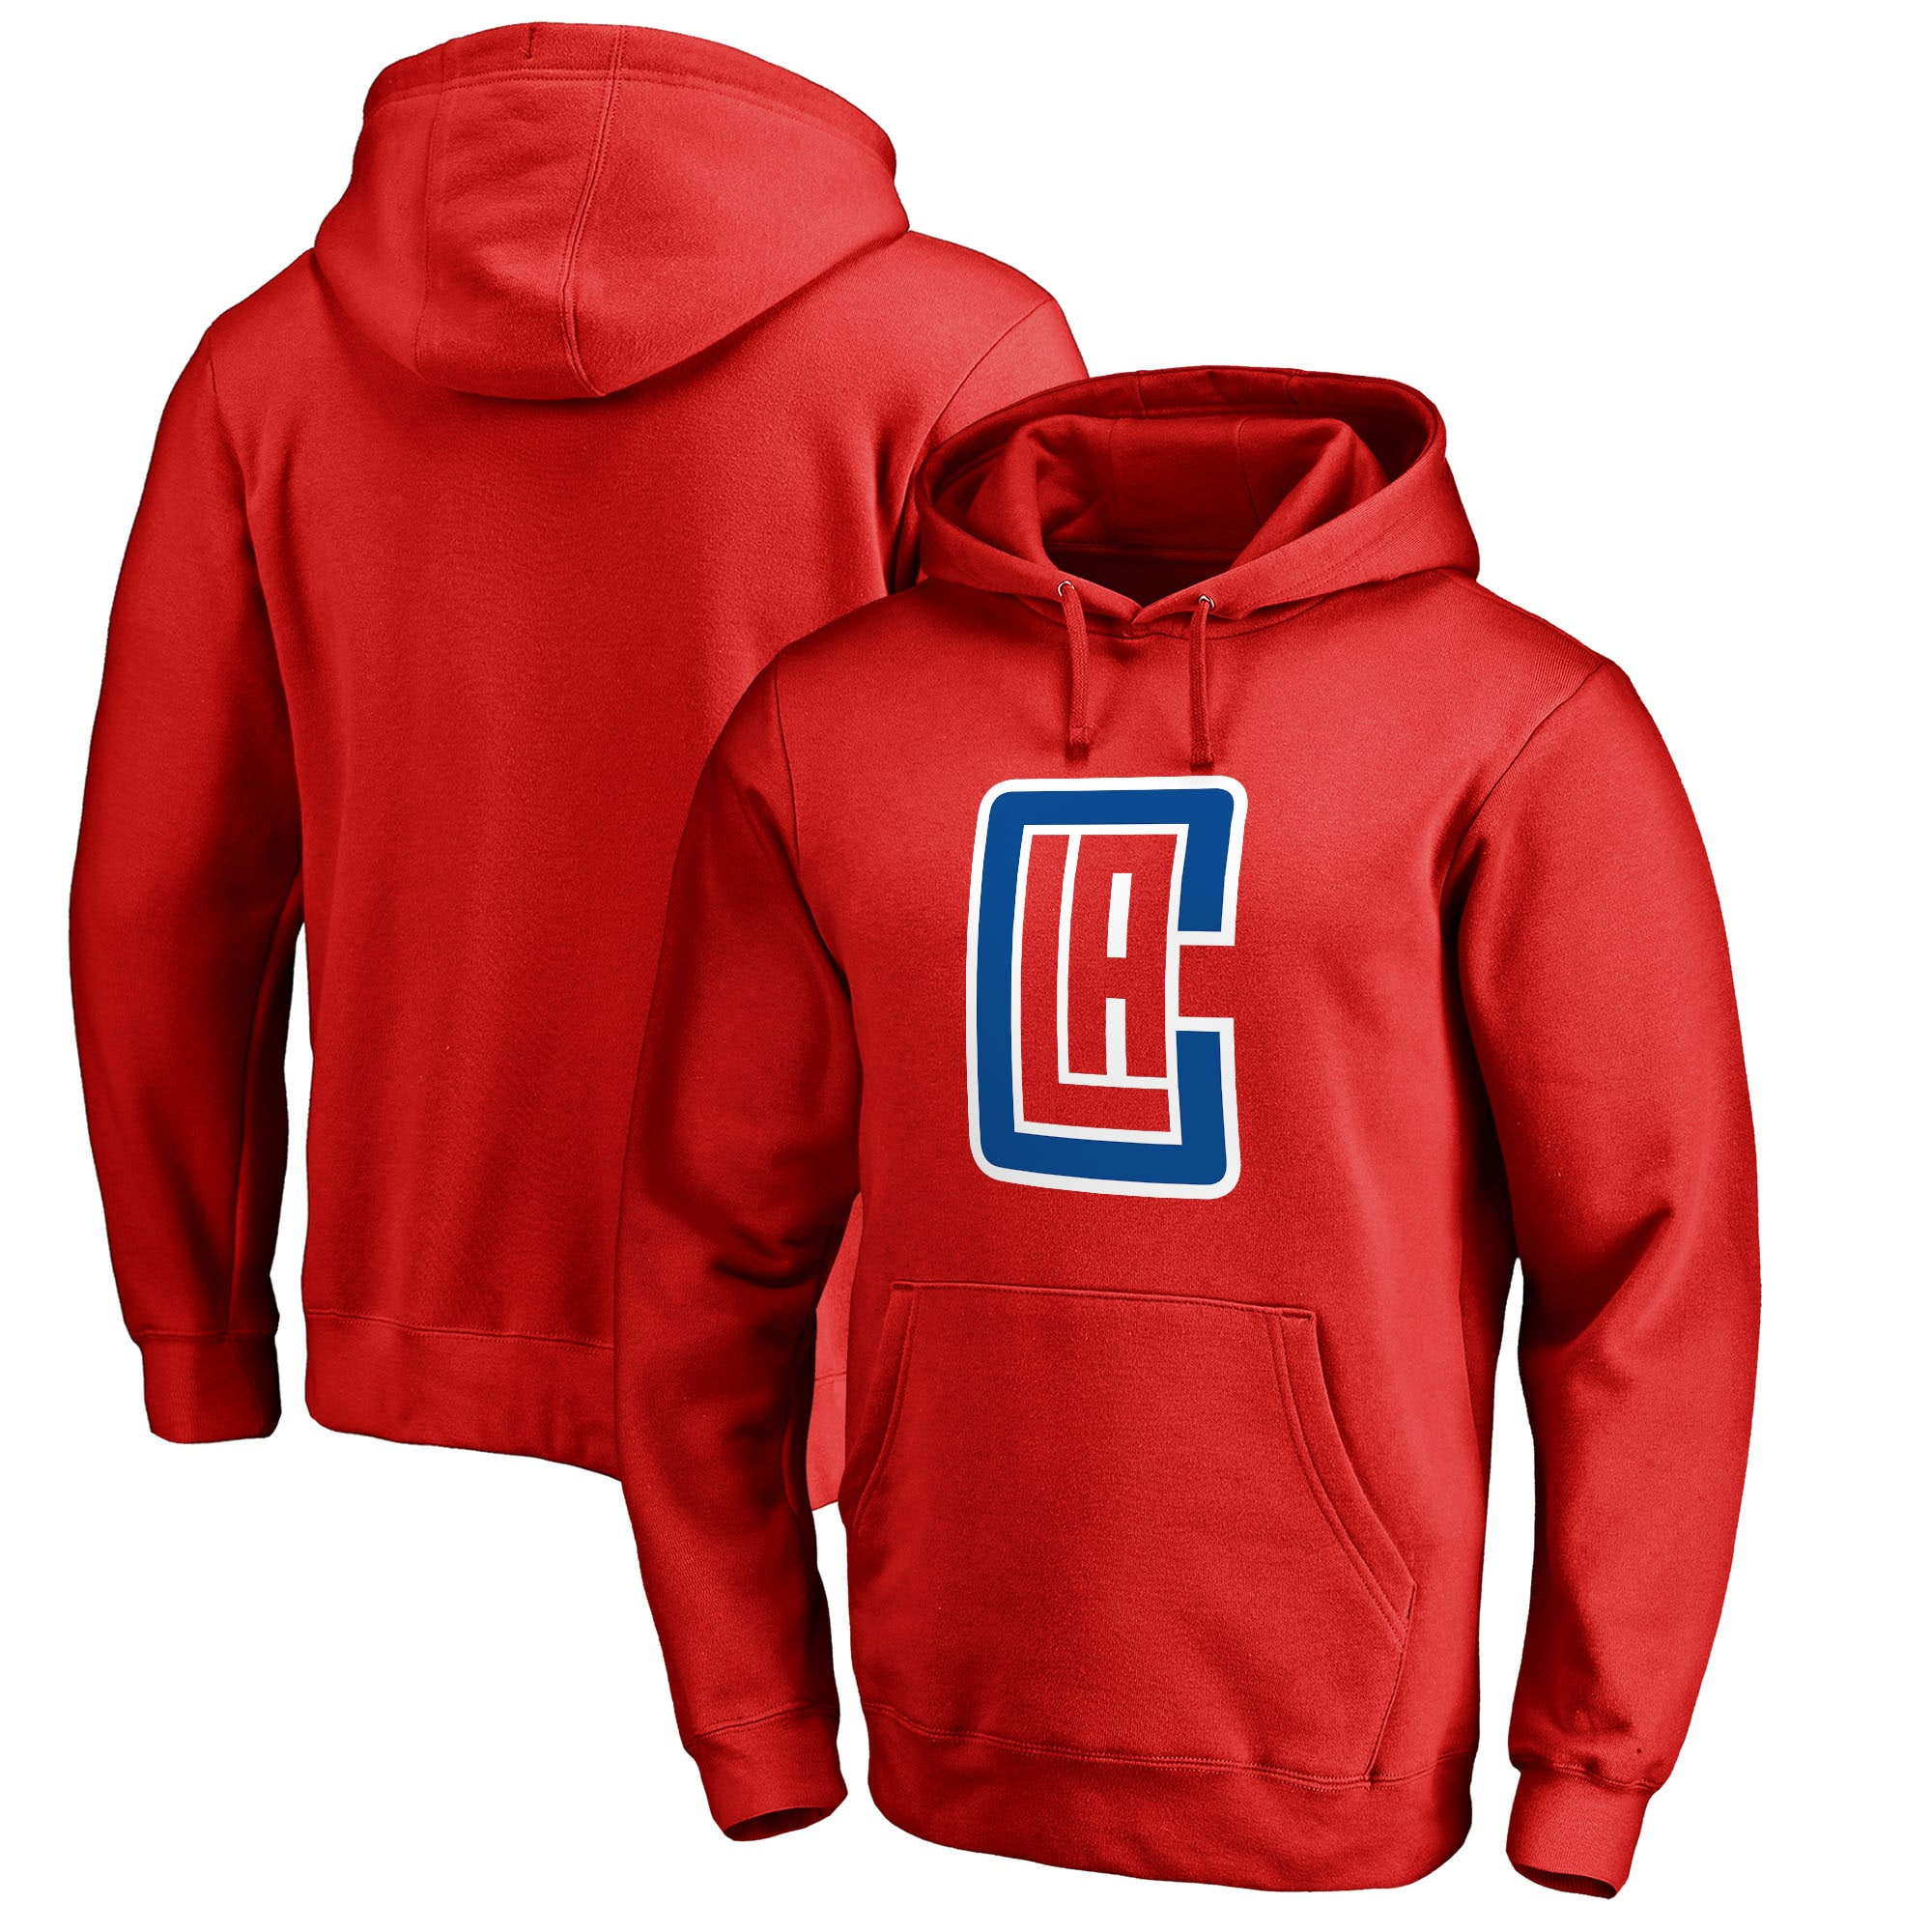 LA Clippers Fanatics Branded Alternate Logo Pullover Hoodie - Red